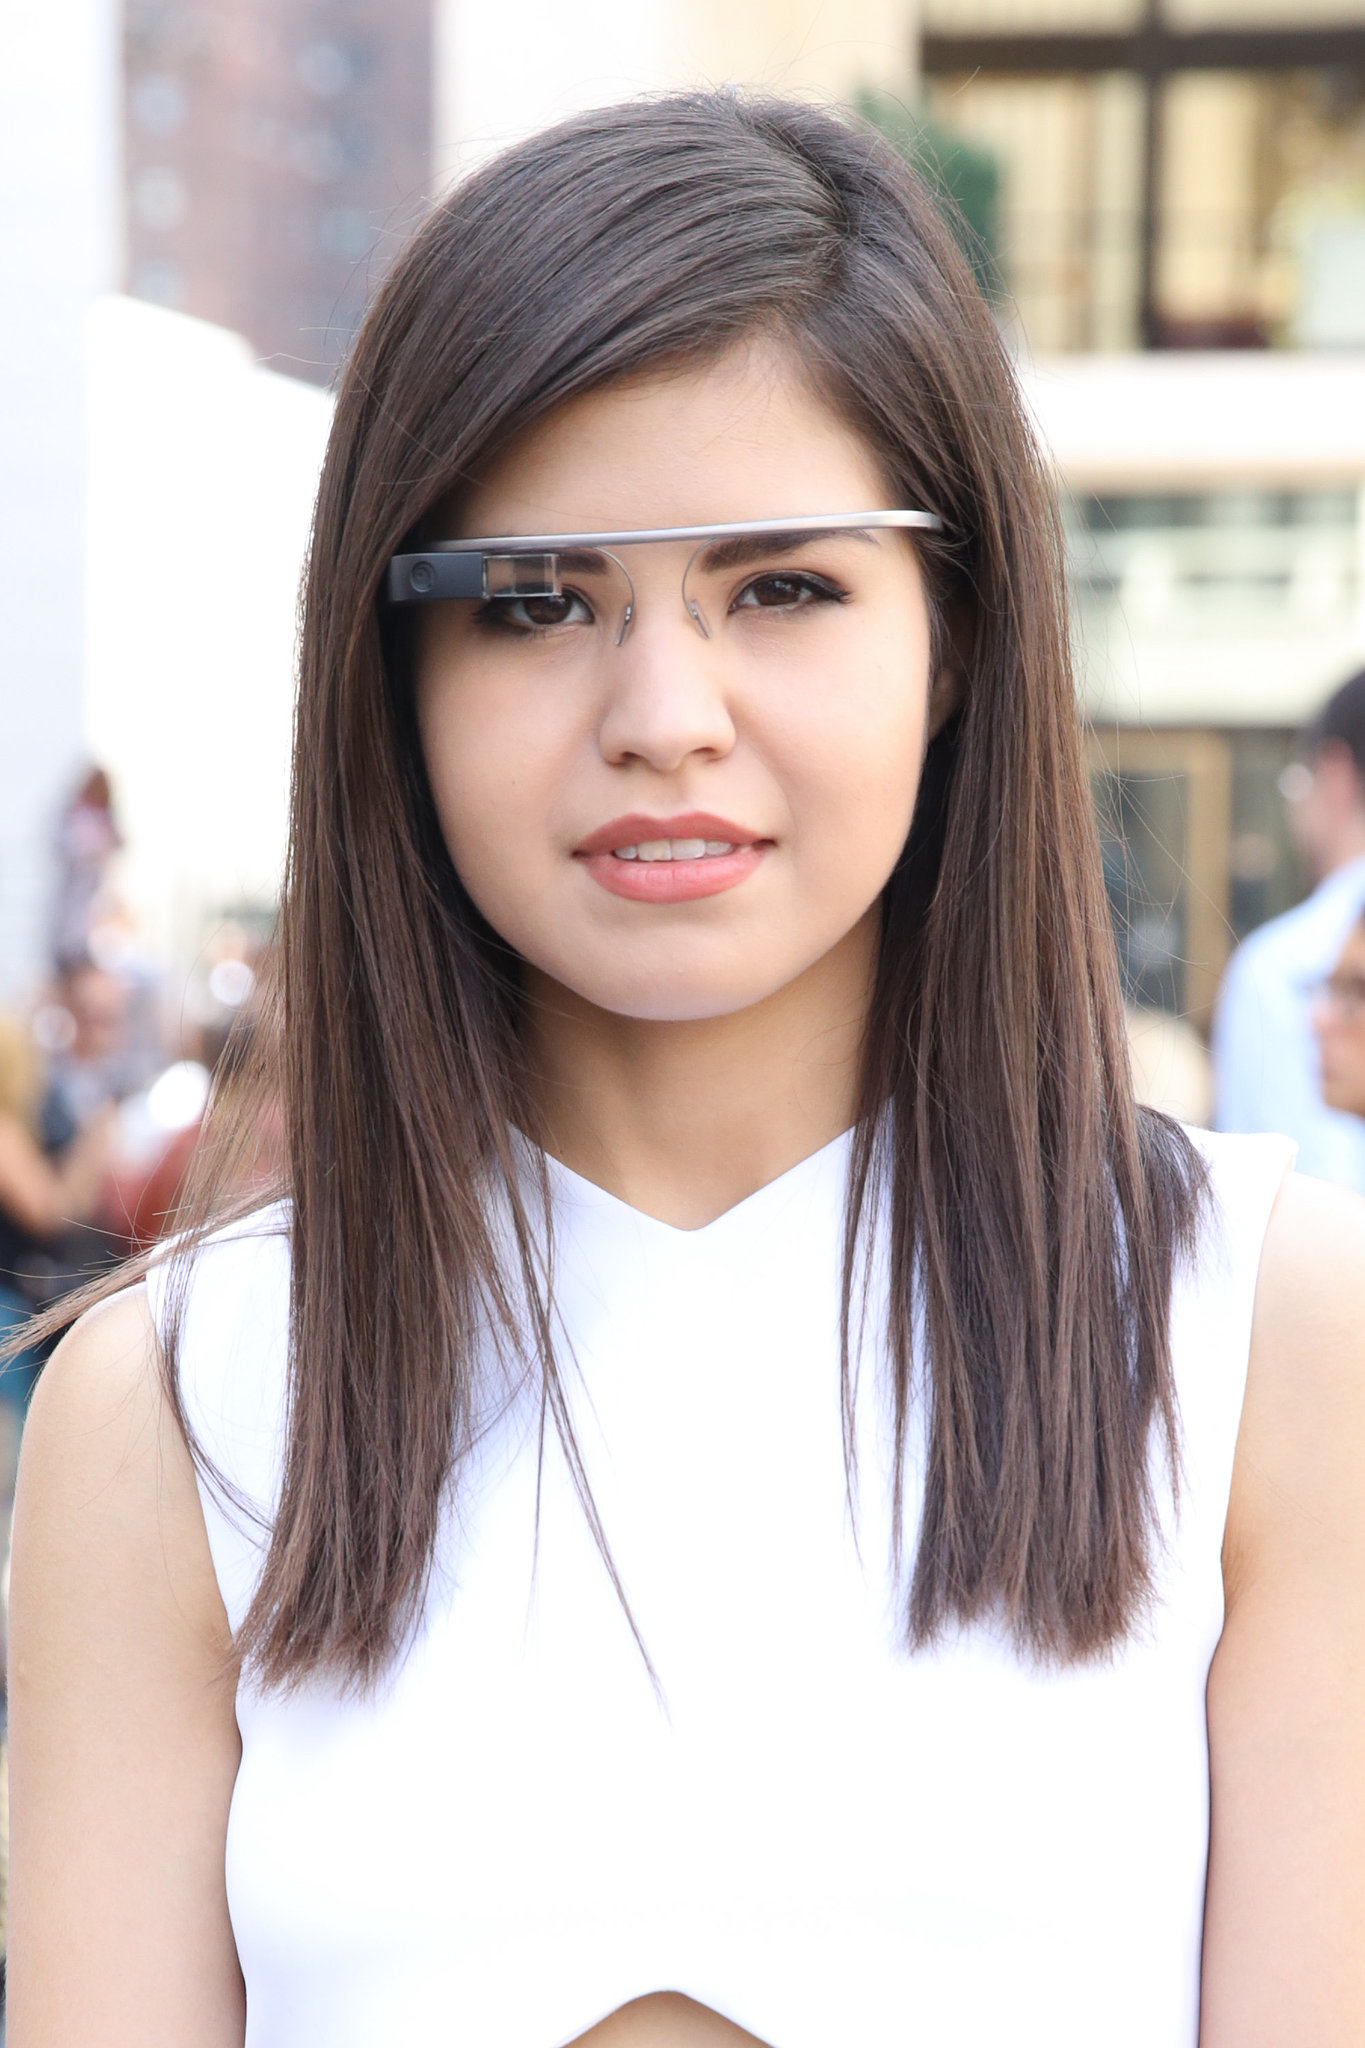 Google Glass, the coolest kind of glasses.